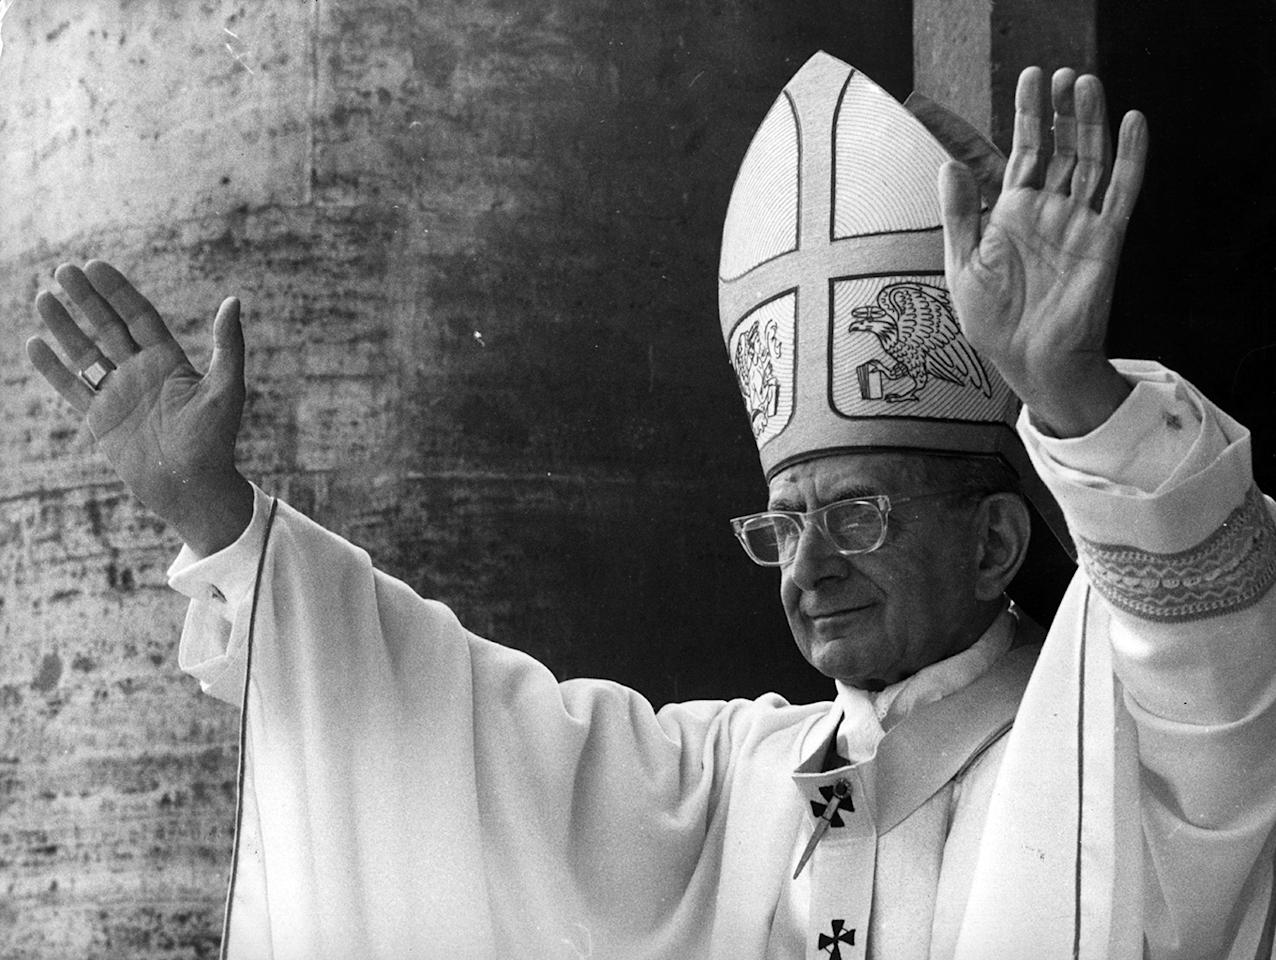 April 1976:  Pope Paul VI, Giovanni Battista Montini, at his Easter Address on the balcony of St Peter's Basilica.  (Photo by Keystone/Getty Images)